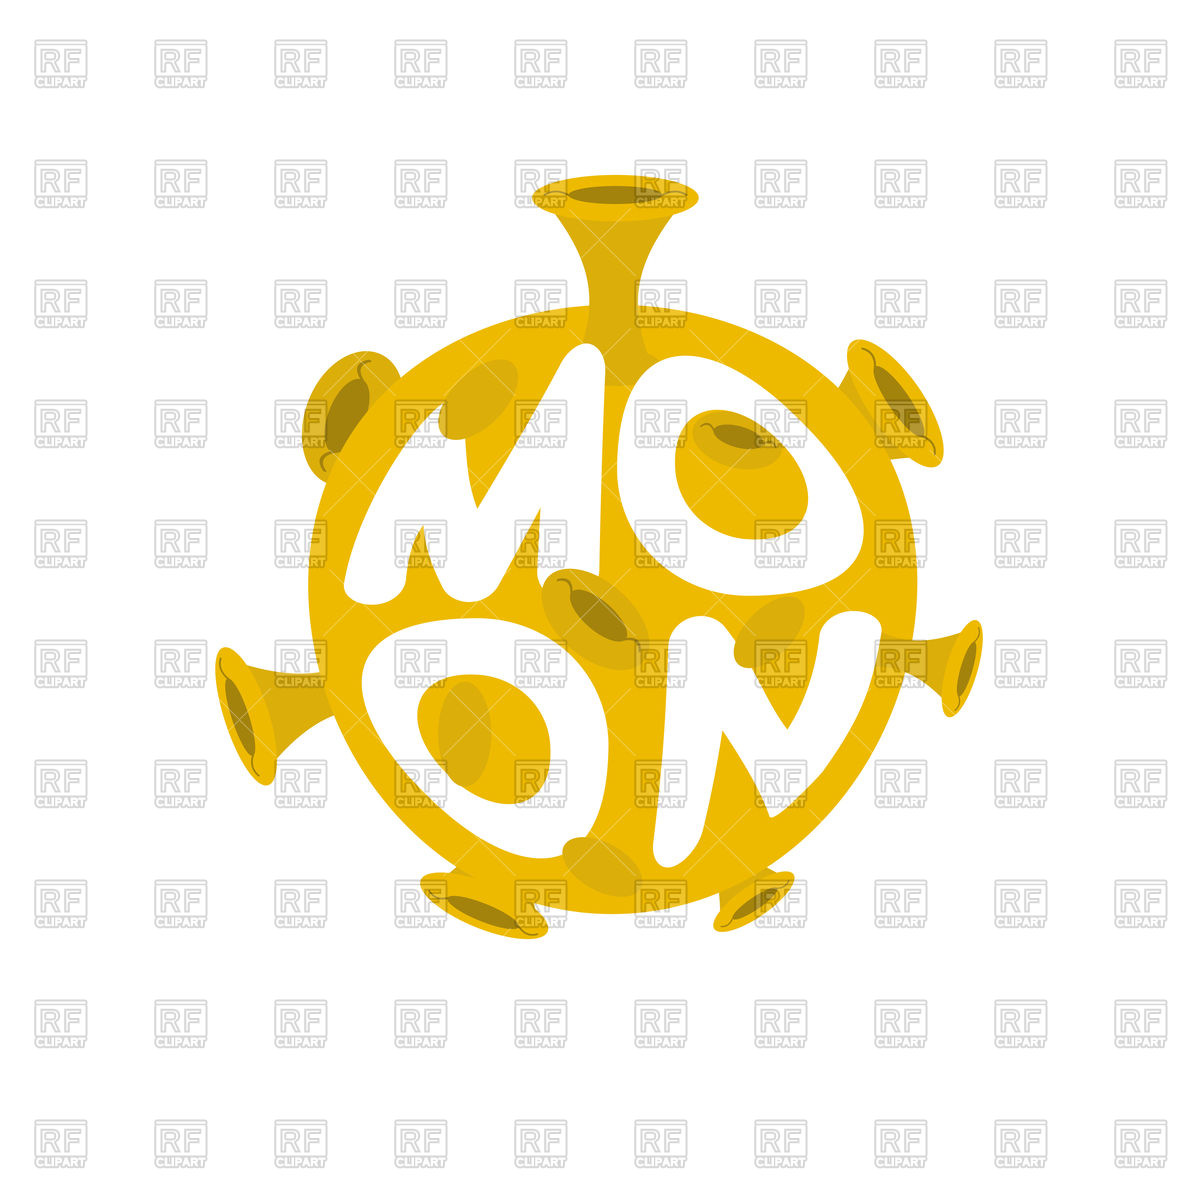 1200x1200 Moon Lettering. Yellow Planet Of Solar System Icon. Royalty Free